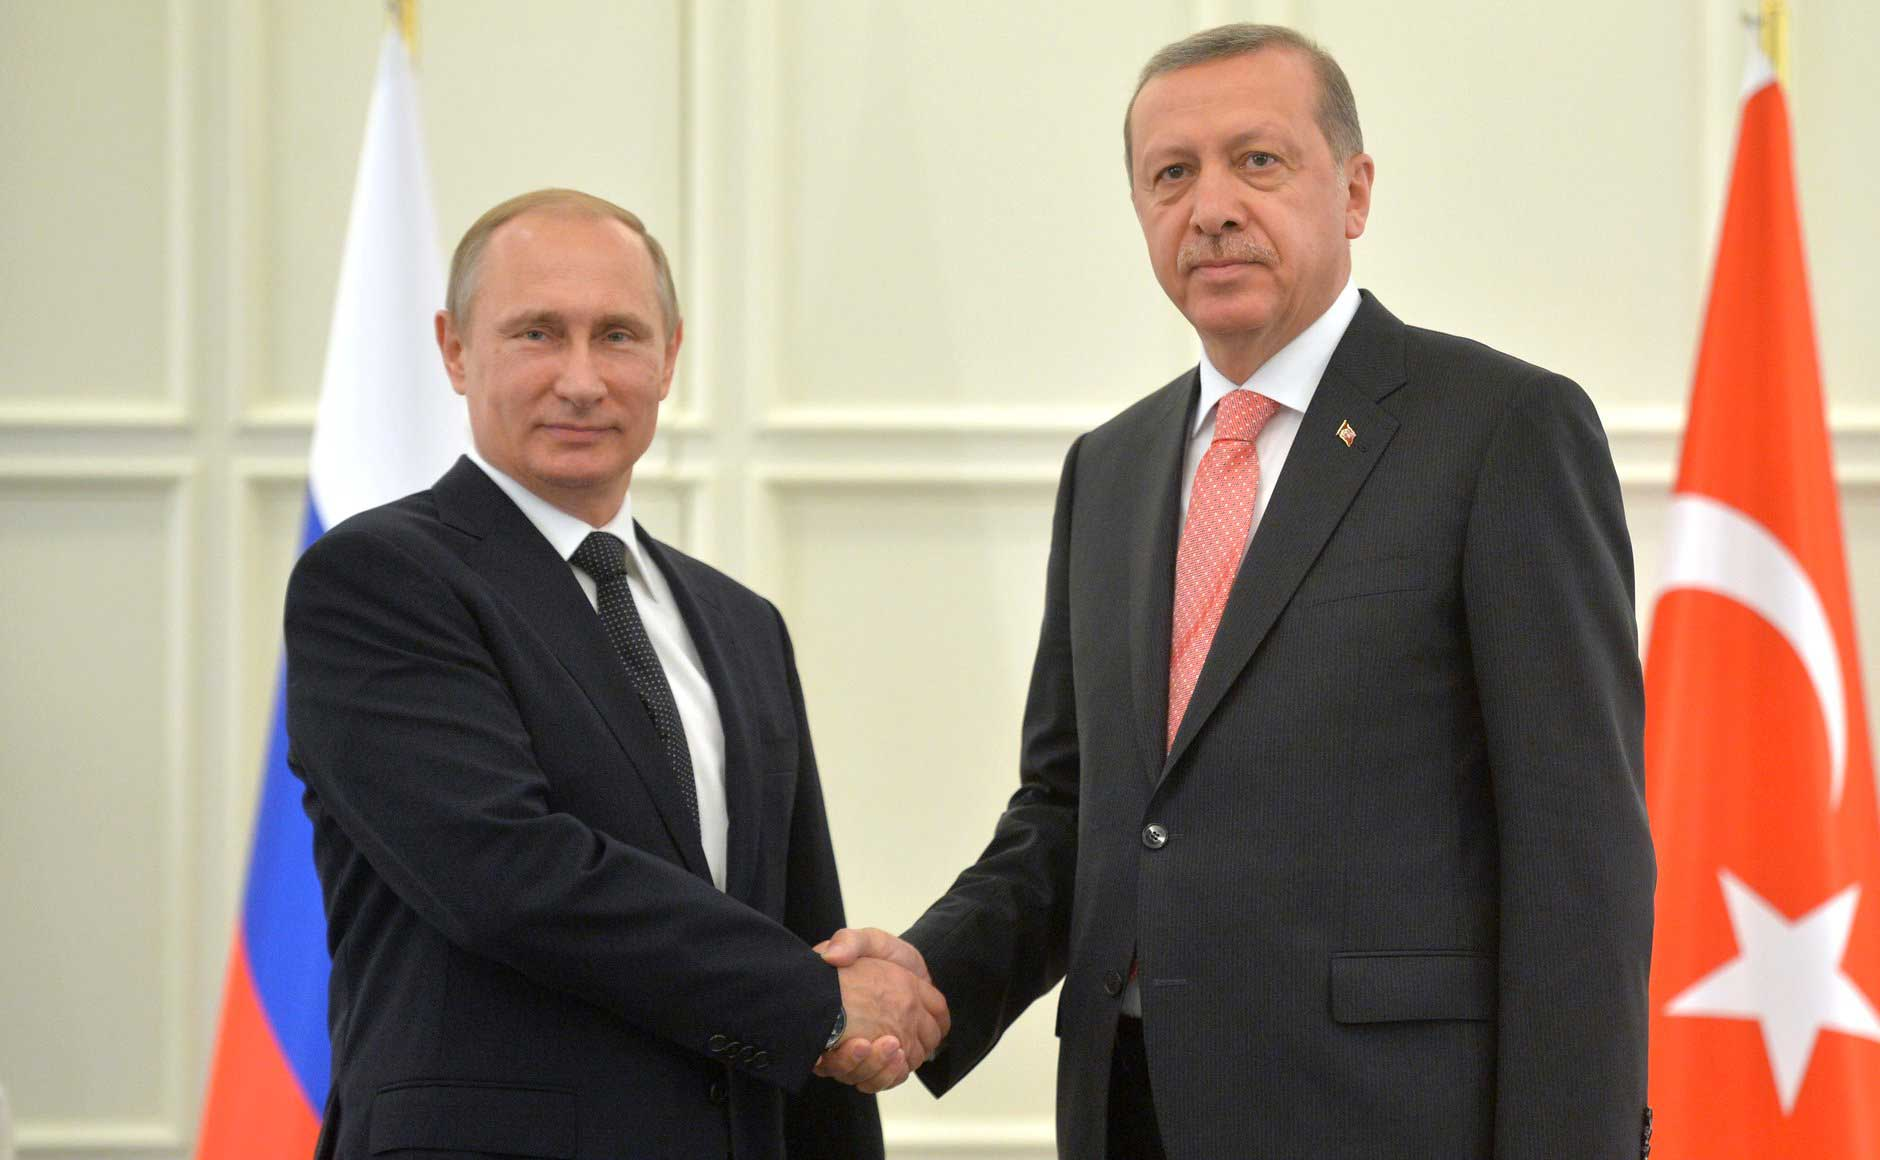 vladimir_putin_and_recep_erdogan